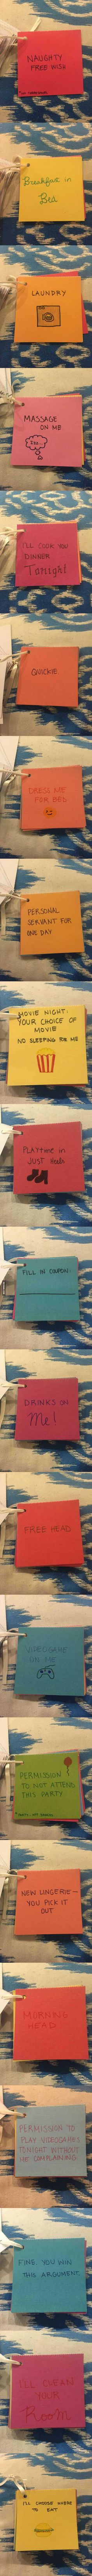 This Guy's Girlfriend Made Him Coupons For Their Anniversary - 9GAG …